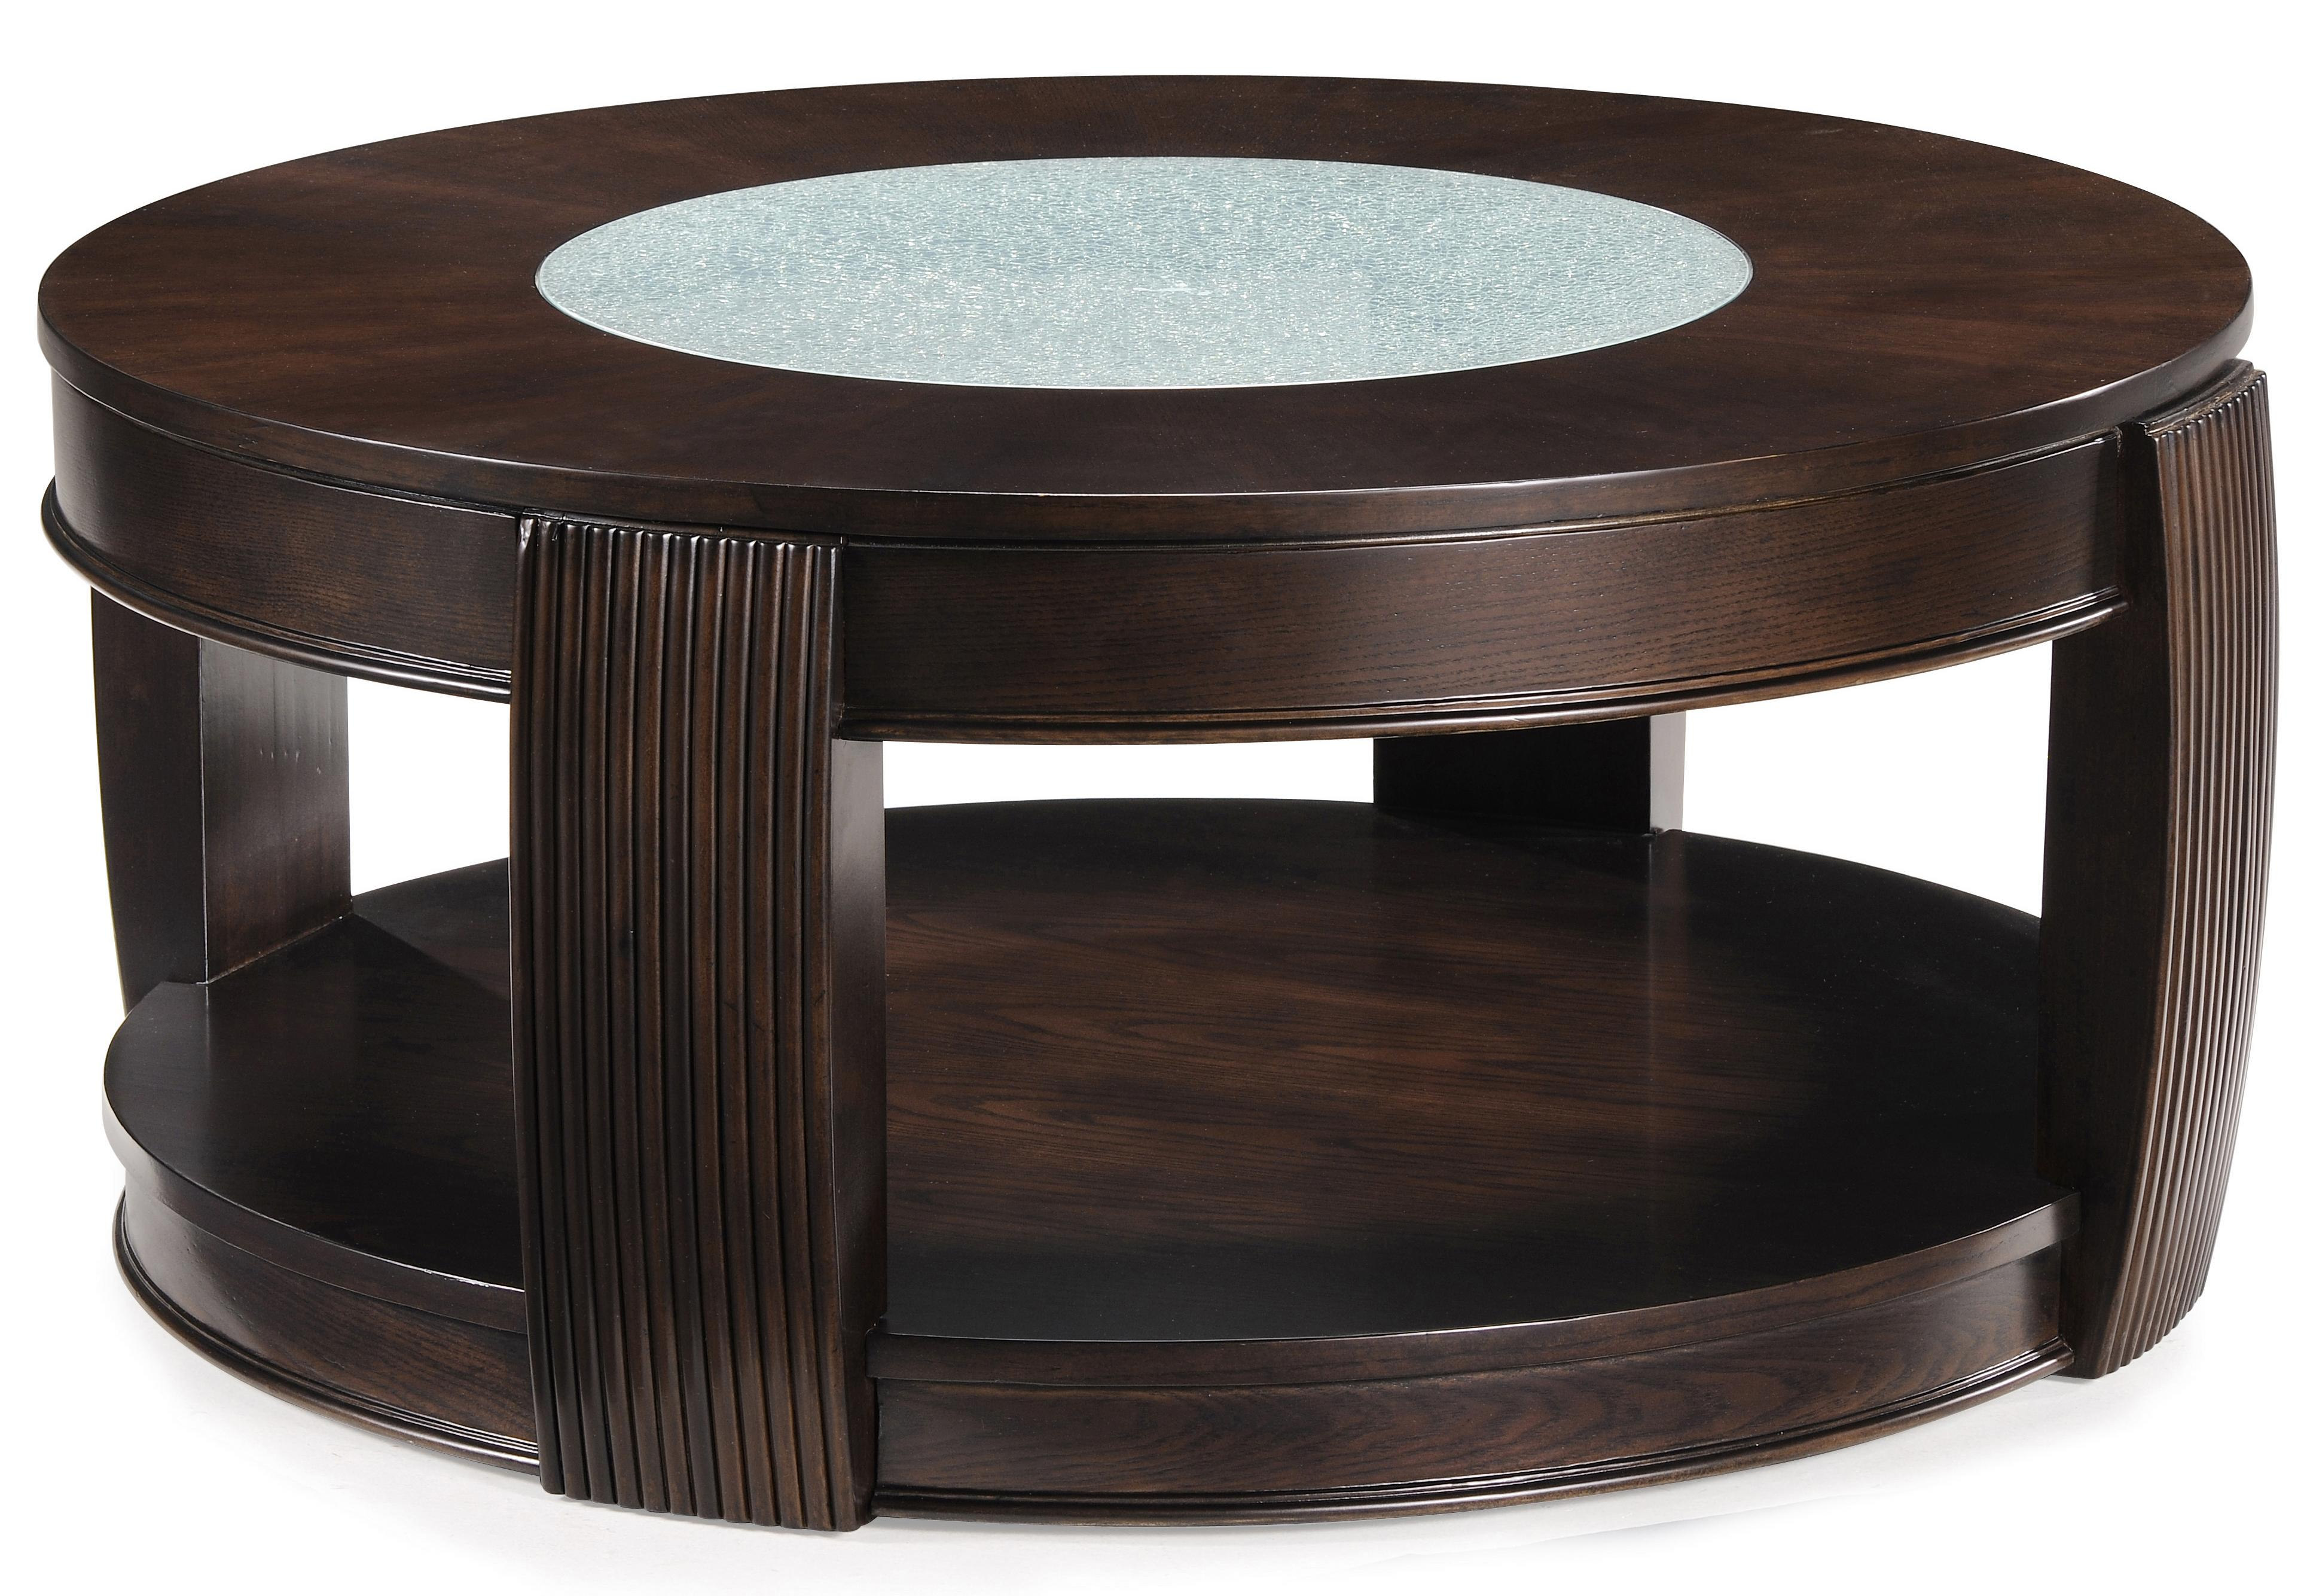 Magnussen Home Ino Round Cocktail Table - Item Number: T1738-45